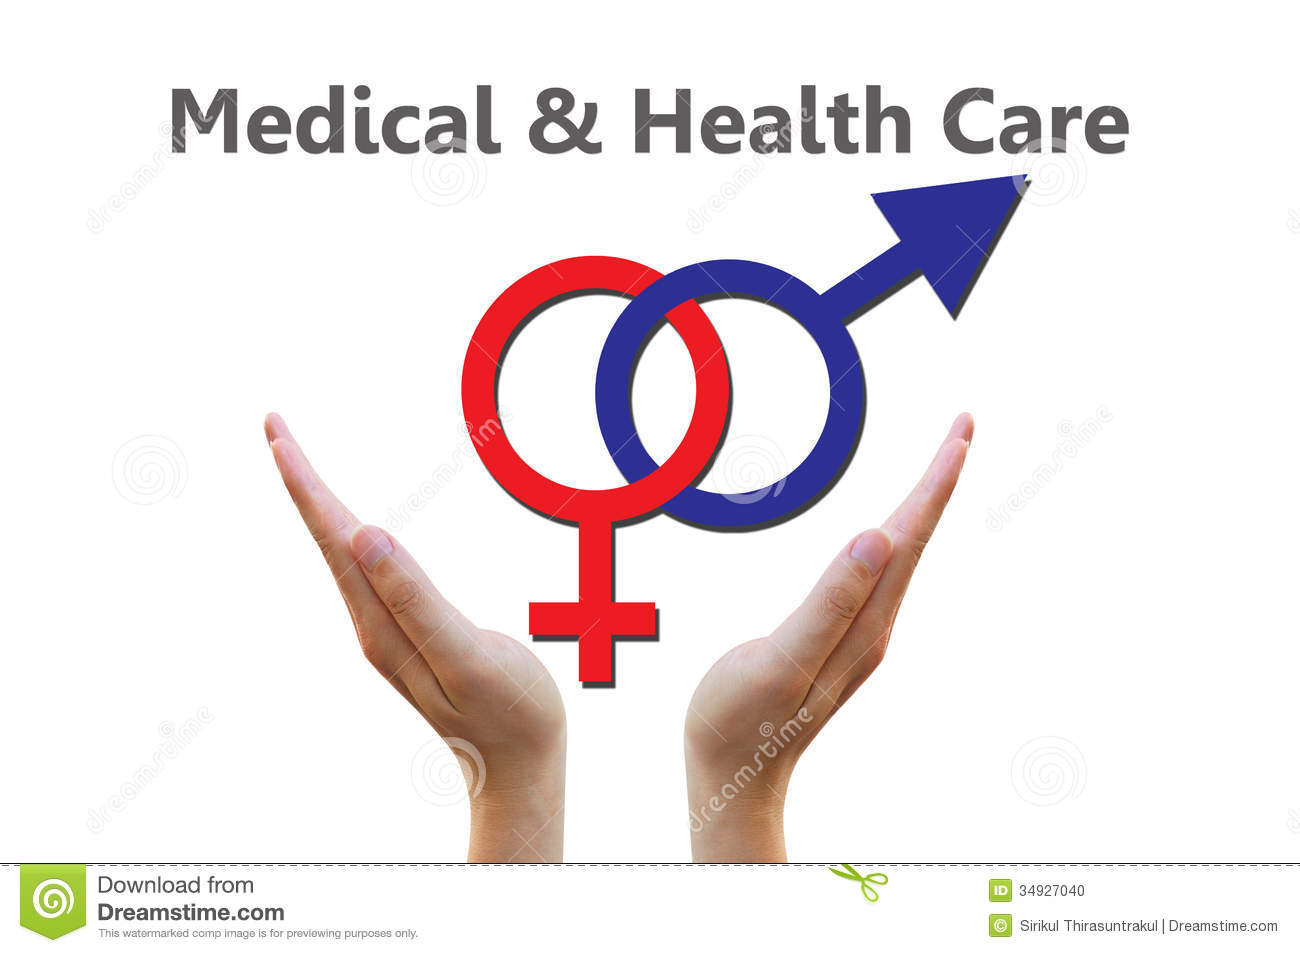 Sex symbol for medical and healthcare concept stock photo image of sex symbol for medical and healthcare concept biocorpaavc Gallery